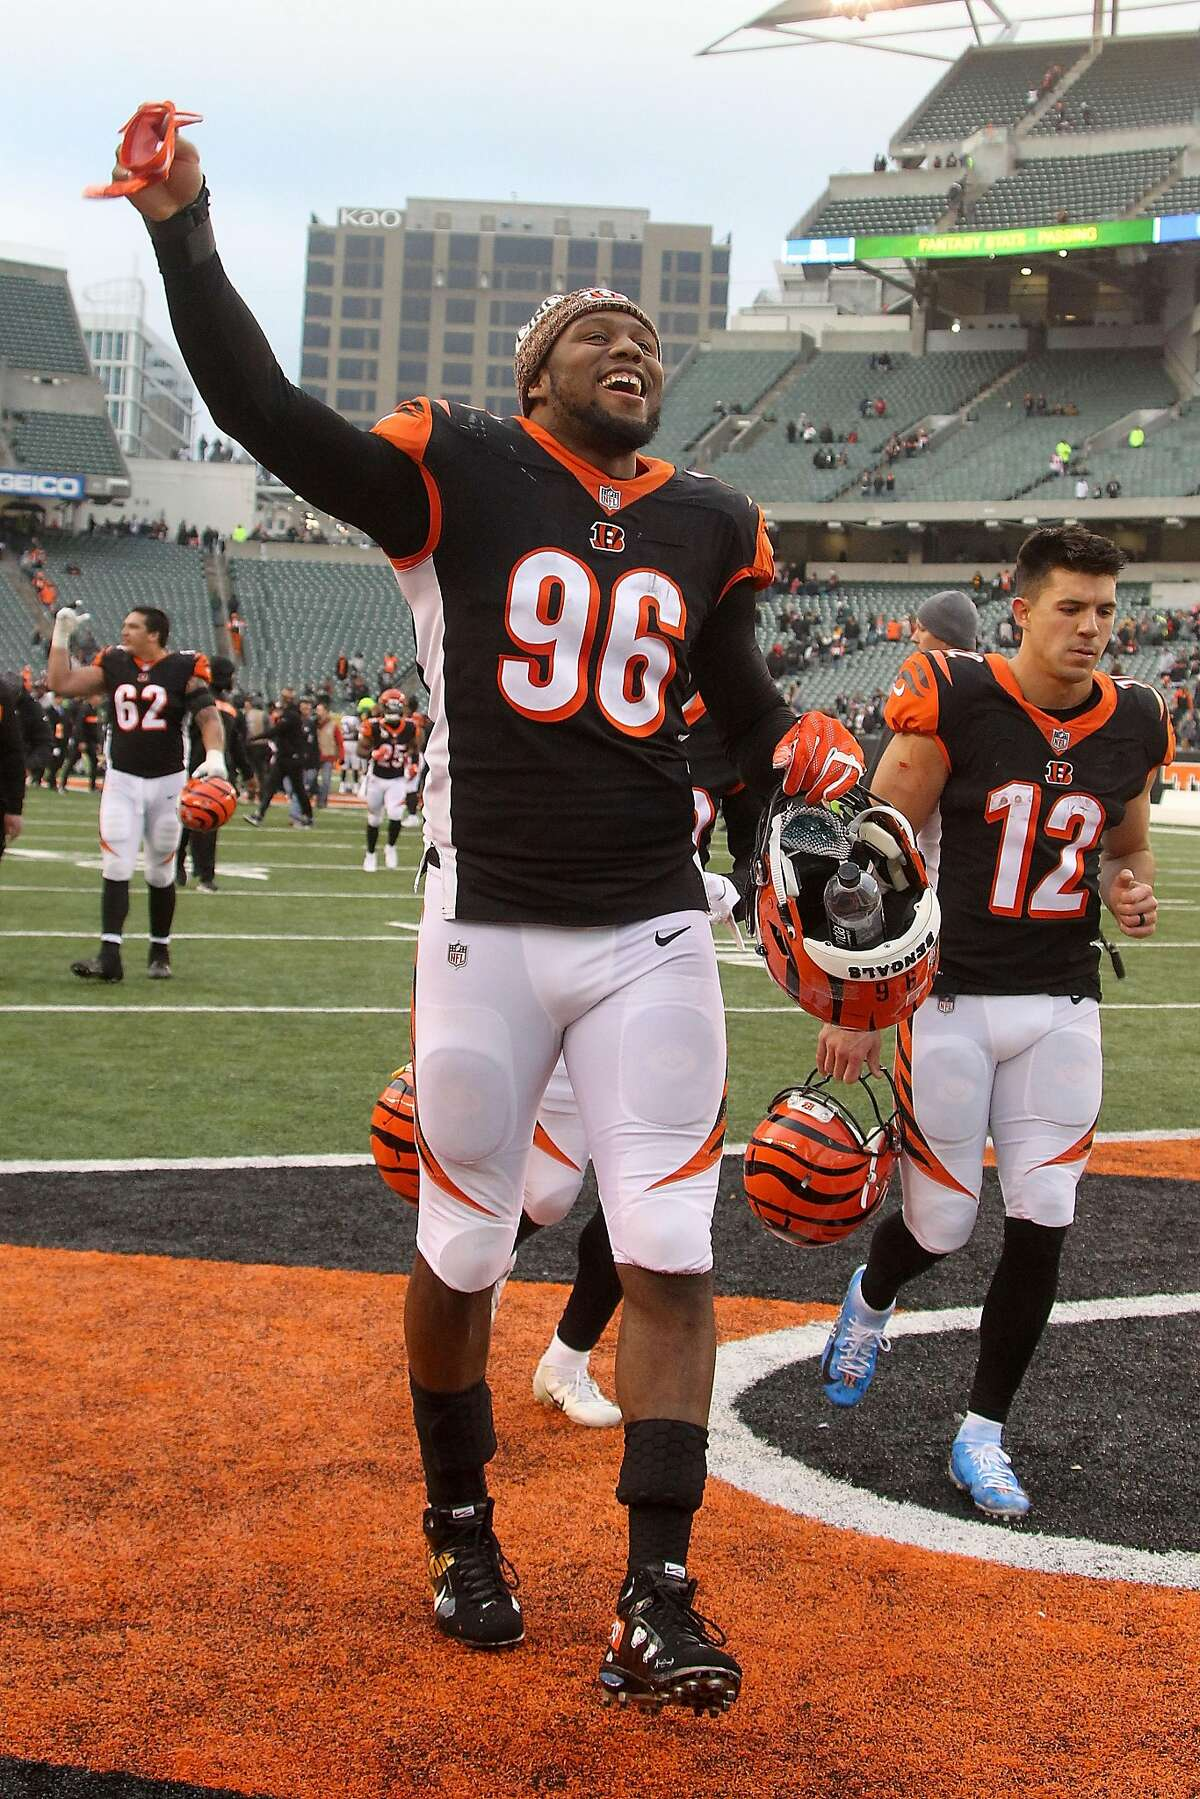 CINCINNATI, OH - DECEMBER 16: Carlos Dunlap #96 of the Cincinnati Bengals celebrates while walking off of the field after the end of the game against the Oakland Raiders at Paul Brown Stadium on December 16, 2018 in Cincinnati, Ohio. Oakland defeated Cincinnati 30-16. (Photo by John Grieshop/Getty Images)